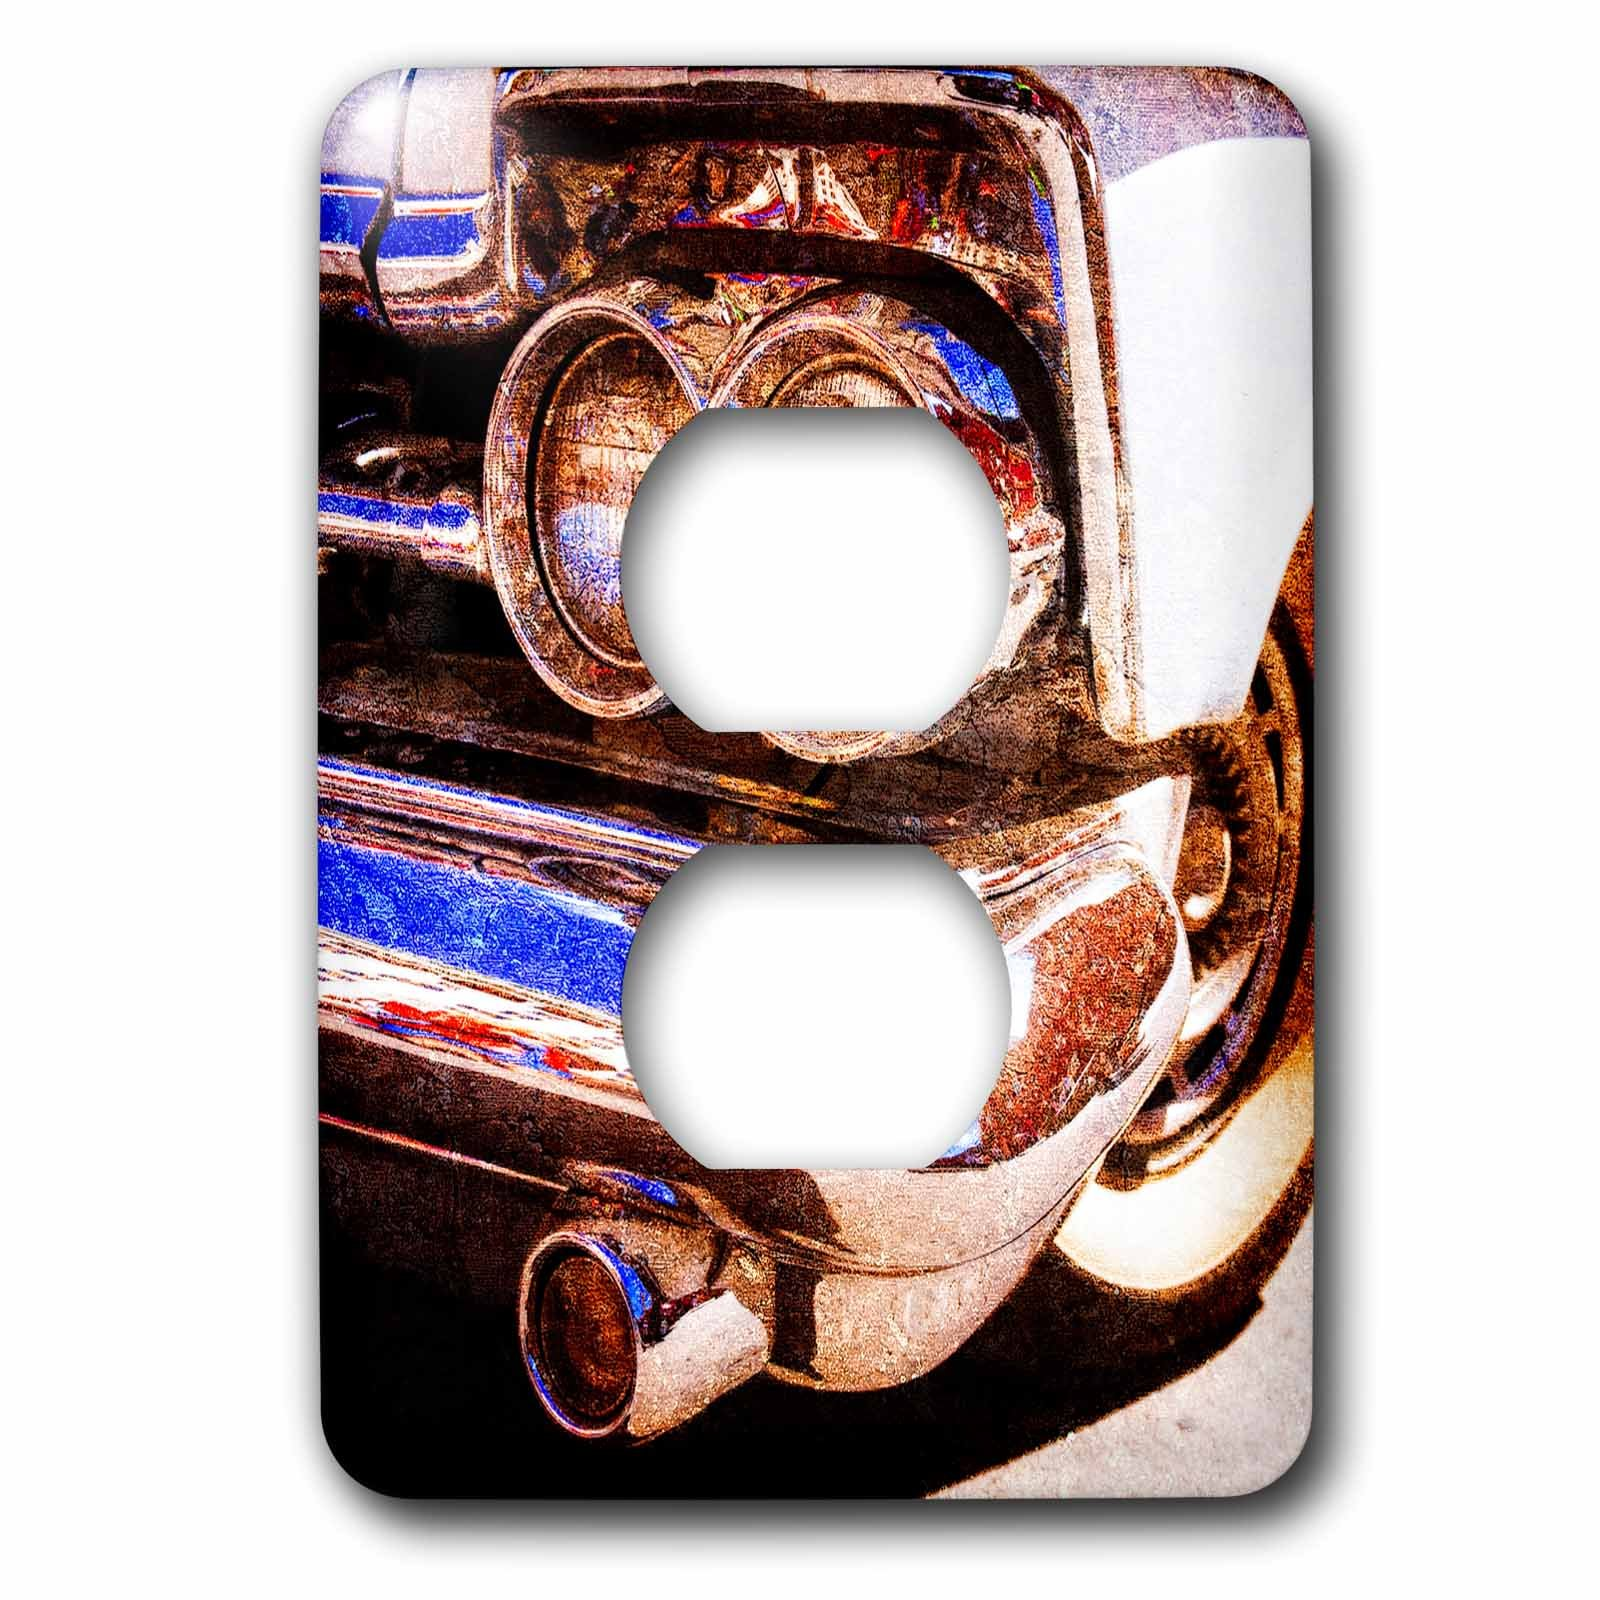 3dRose Alexis Photography - Transport Road - Headlights, bumper, front wheel of a vintage luxury car. Texture photo - Light Switch Covers - 2 plug outlet cover (lsp_271955_6)